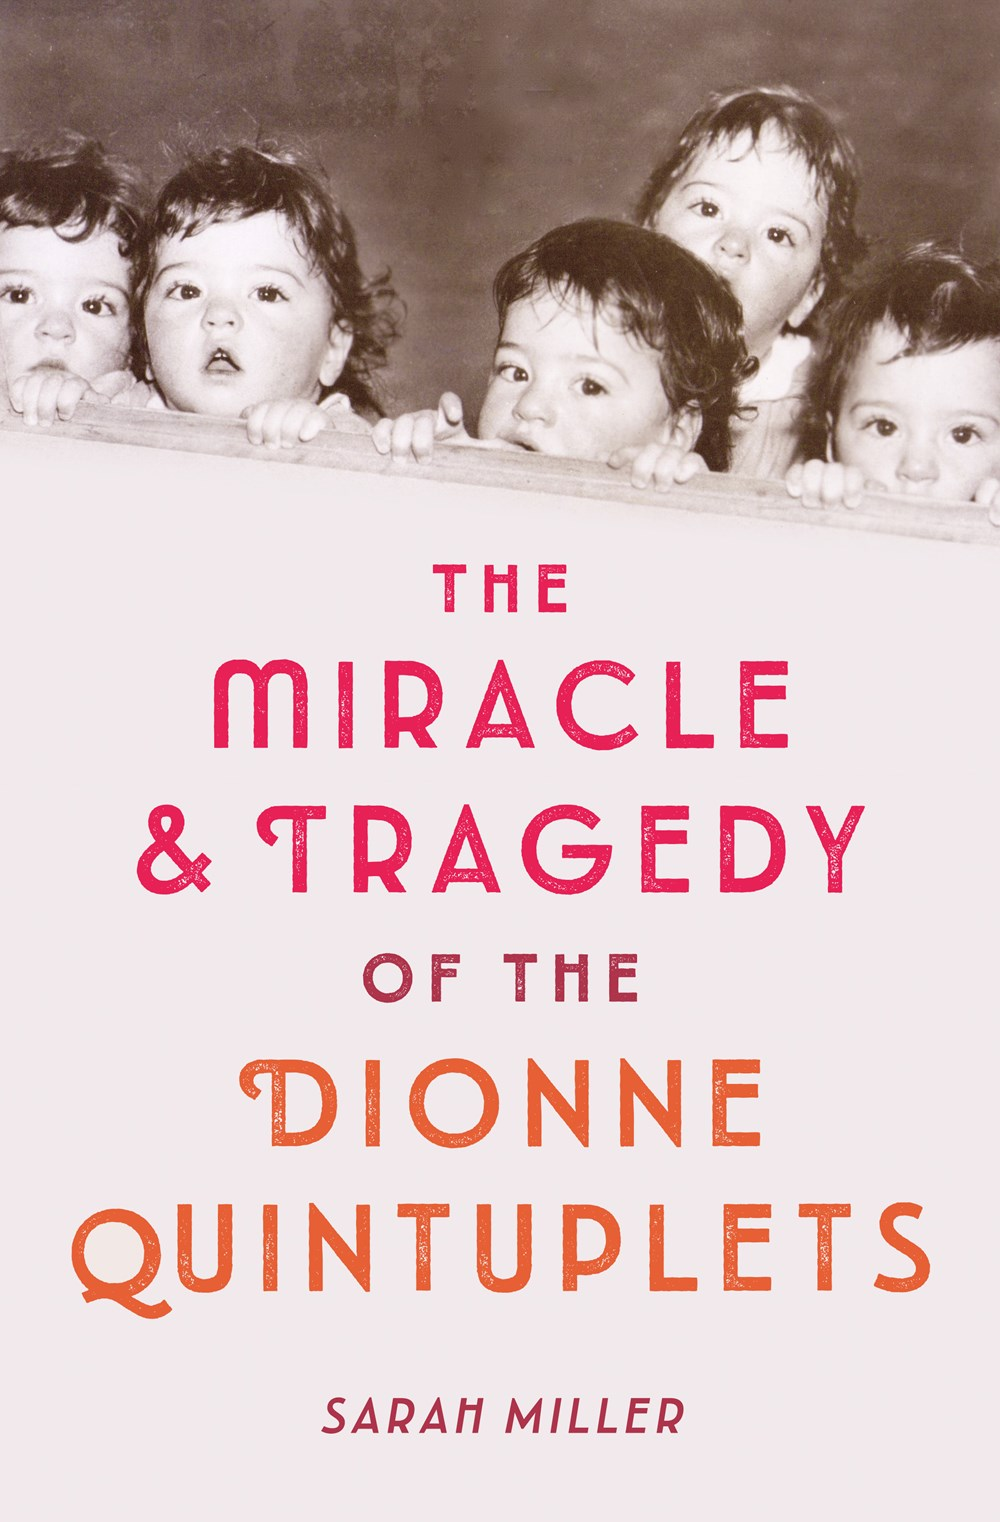 Review of The Miracle & Tragedy 